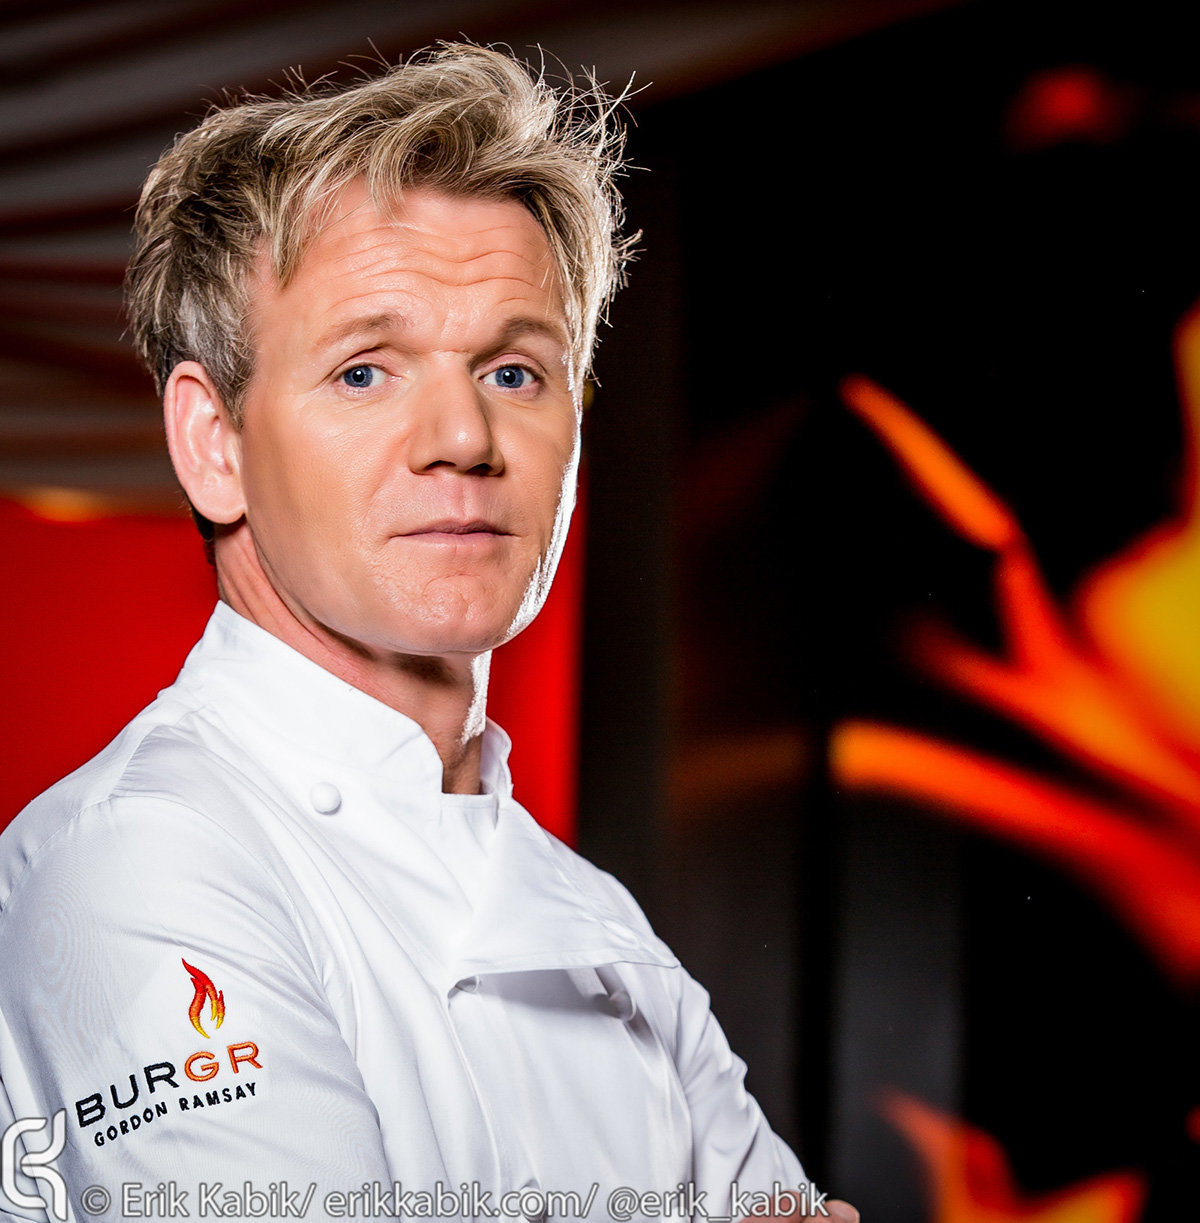 002_12_17_12_gordon_ramsay_kabik-42-Edit.jpg